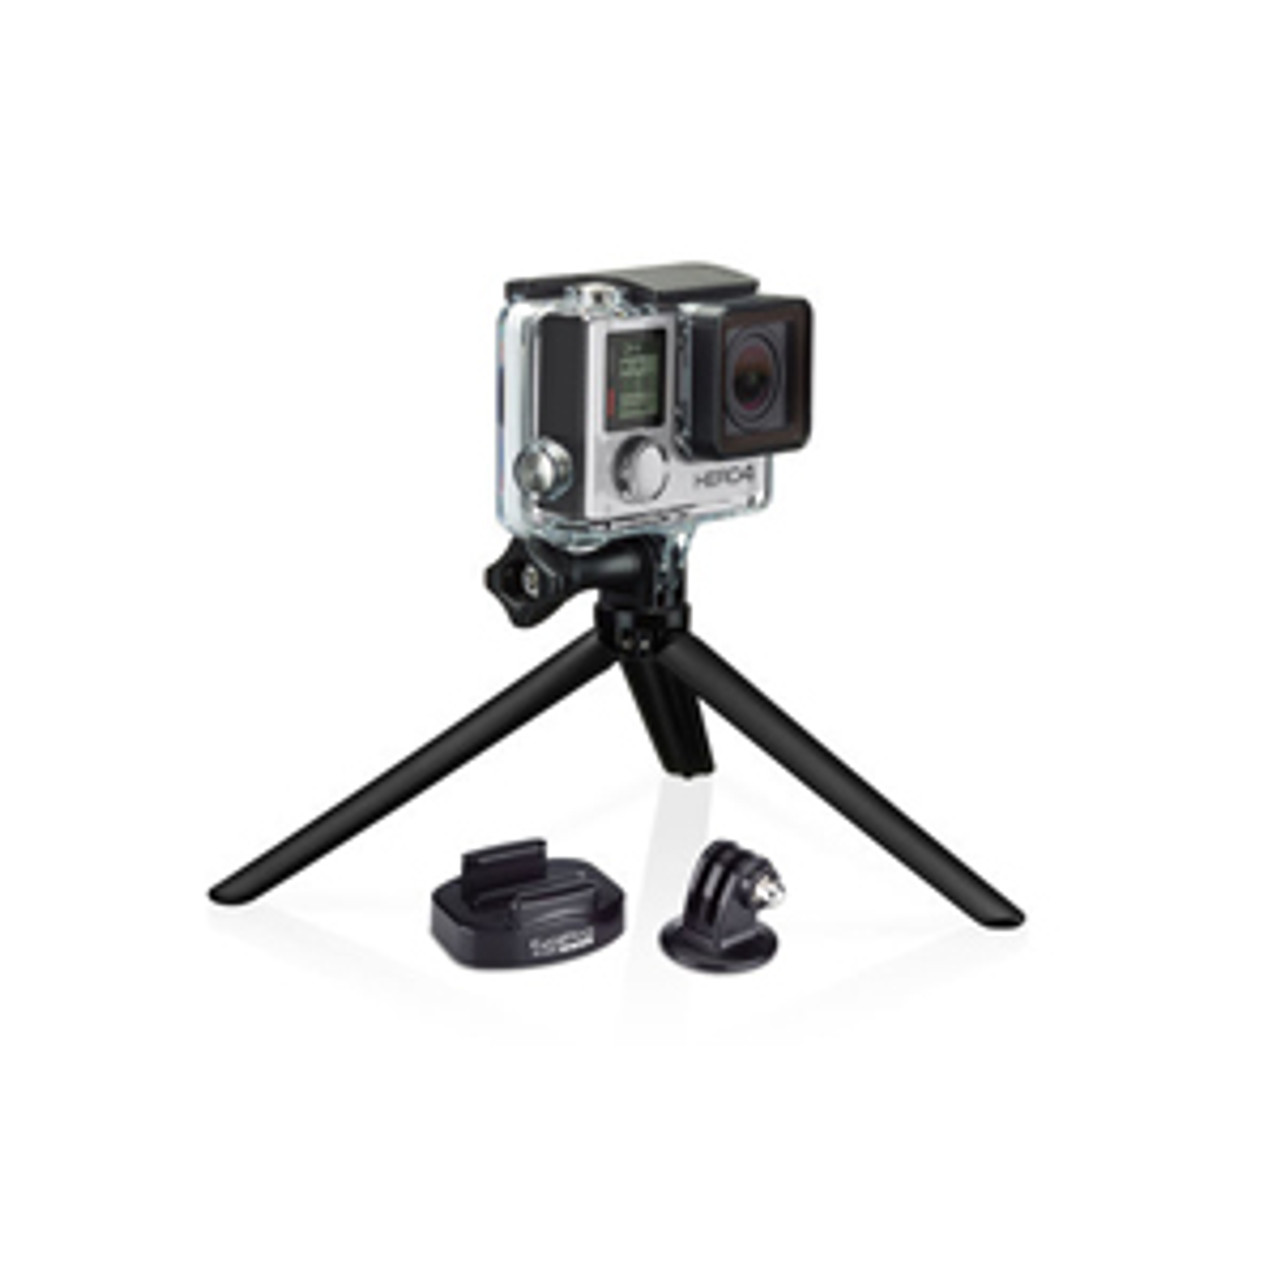 GoPro ABQRT-002 Tripod Mount Version 3